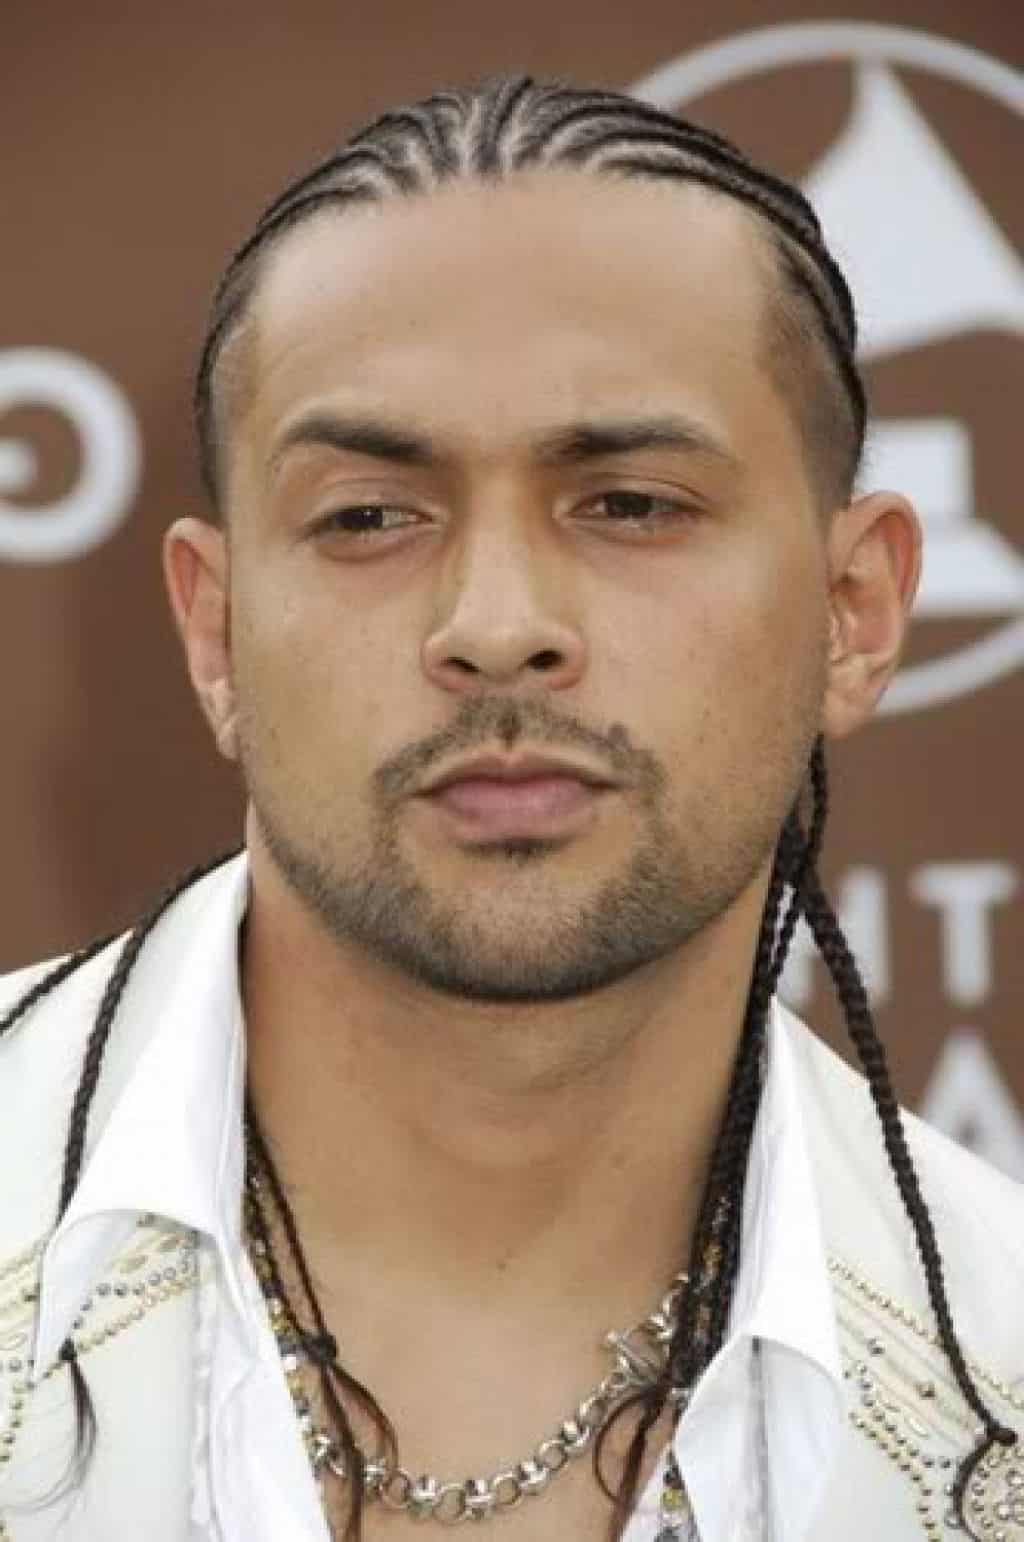 sean paul hair style how to create mens cornrows hairstyle to stand out 9214 | cornrows hairstyle 6